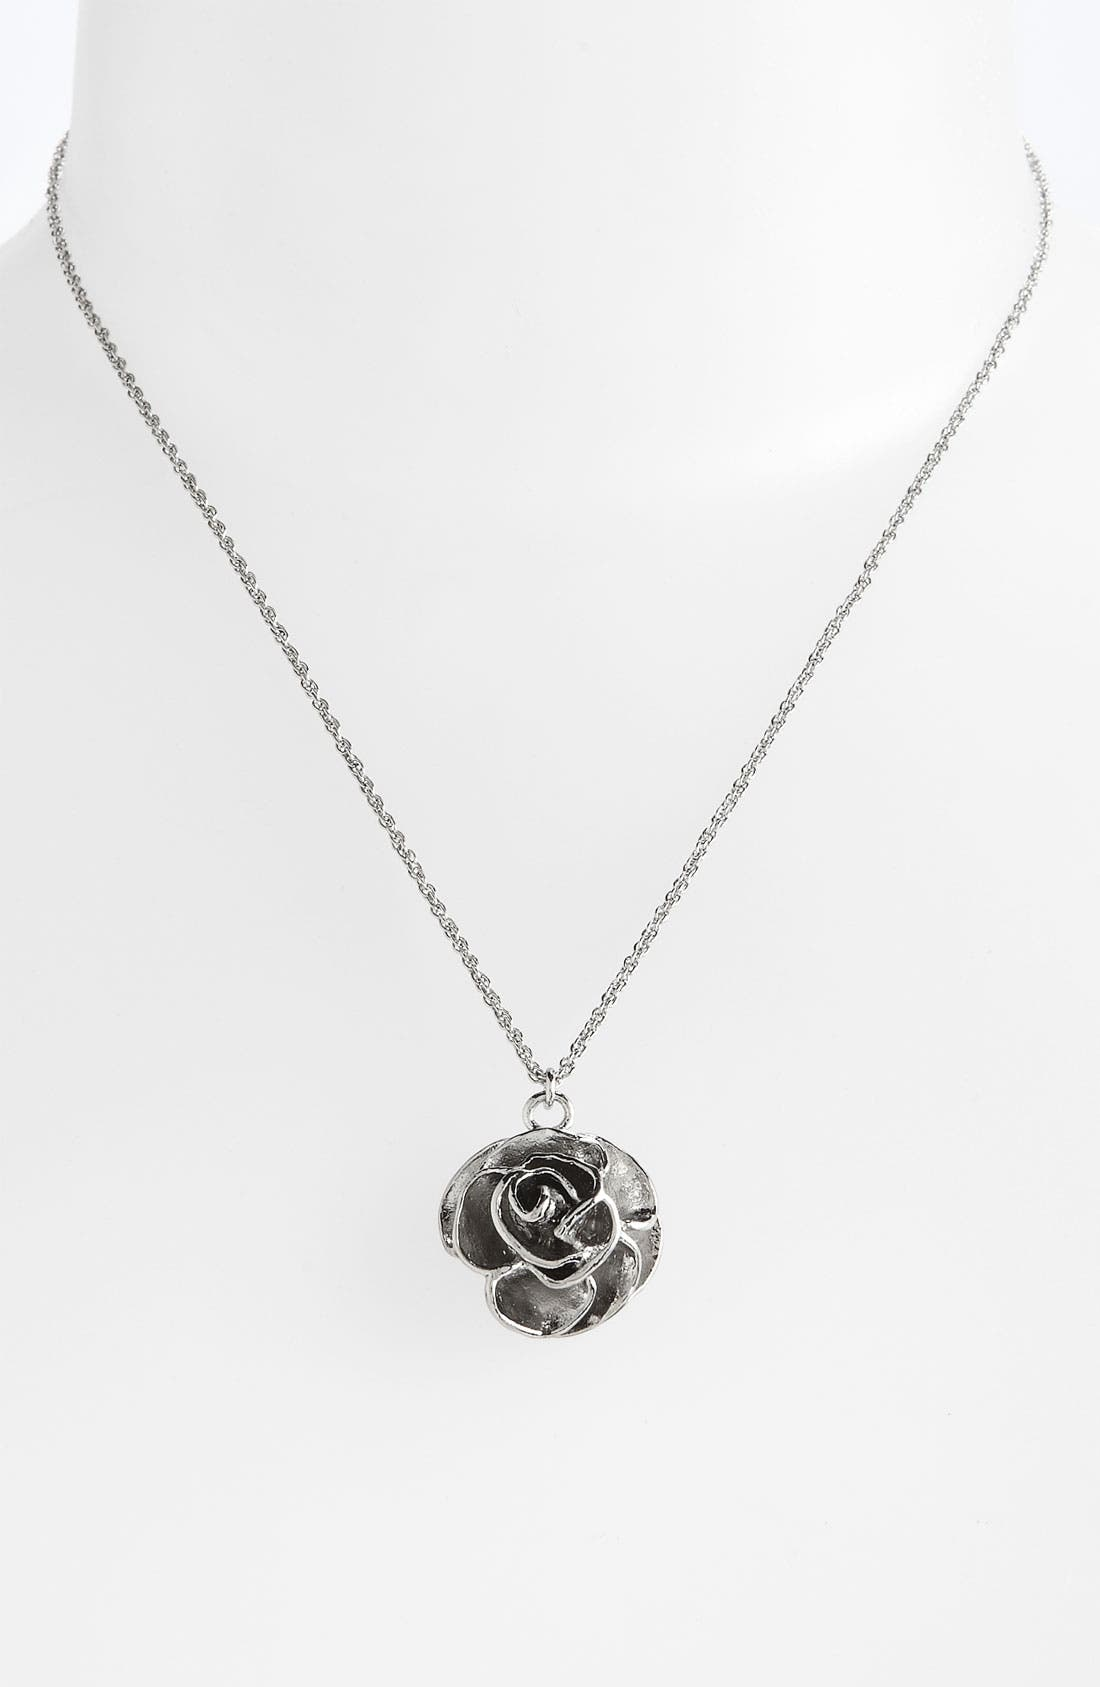 Alternate Image 1 Selected - Kendra Scott 'Michelle' Rose Pendant Necklace